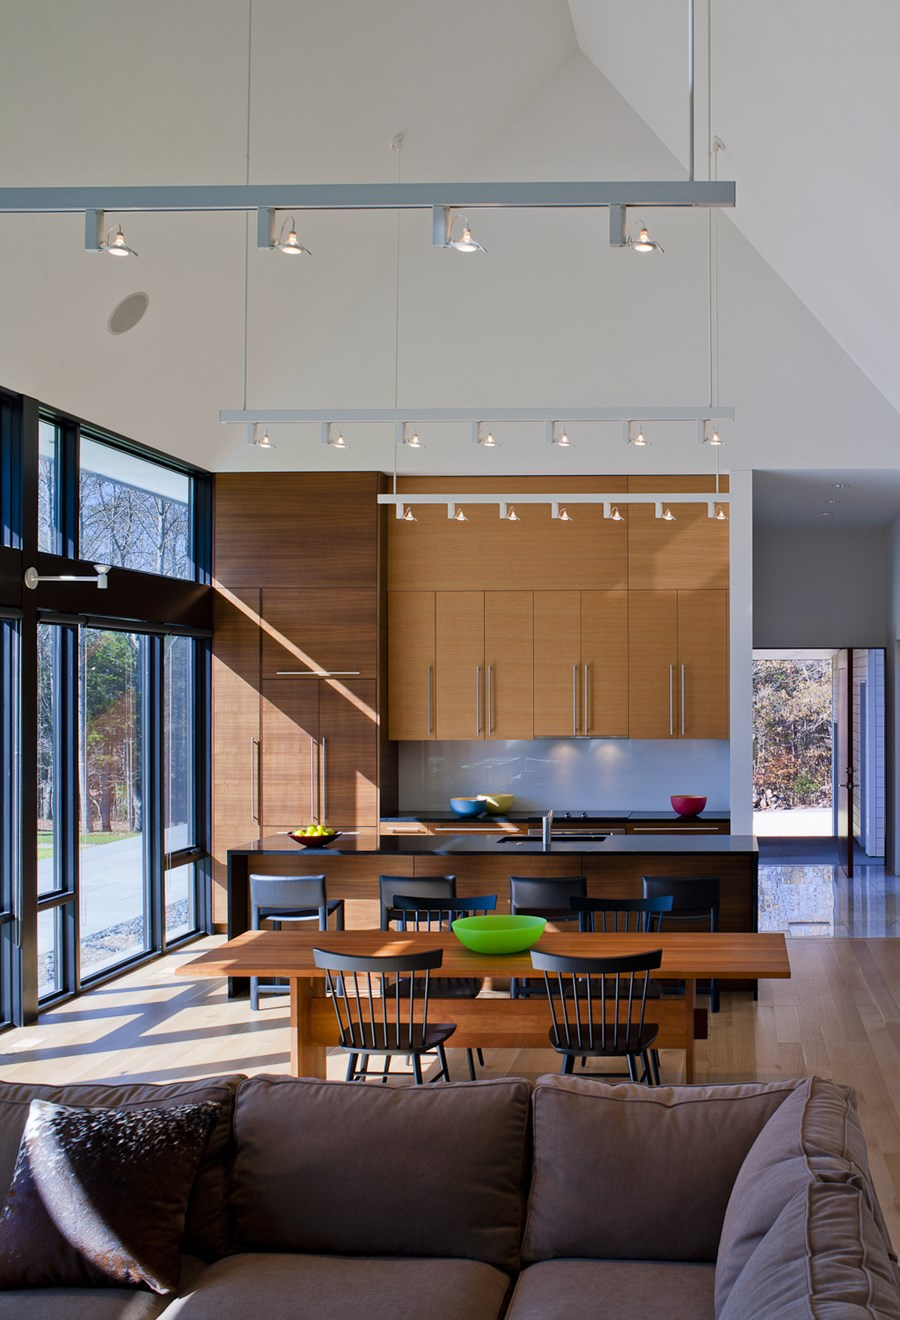 Becherer by Robert M. Gurney, FAIA  Architect 05